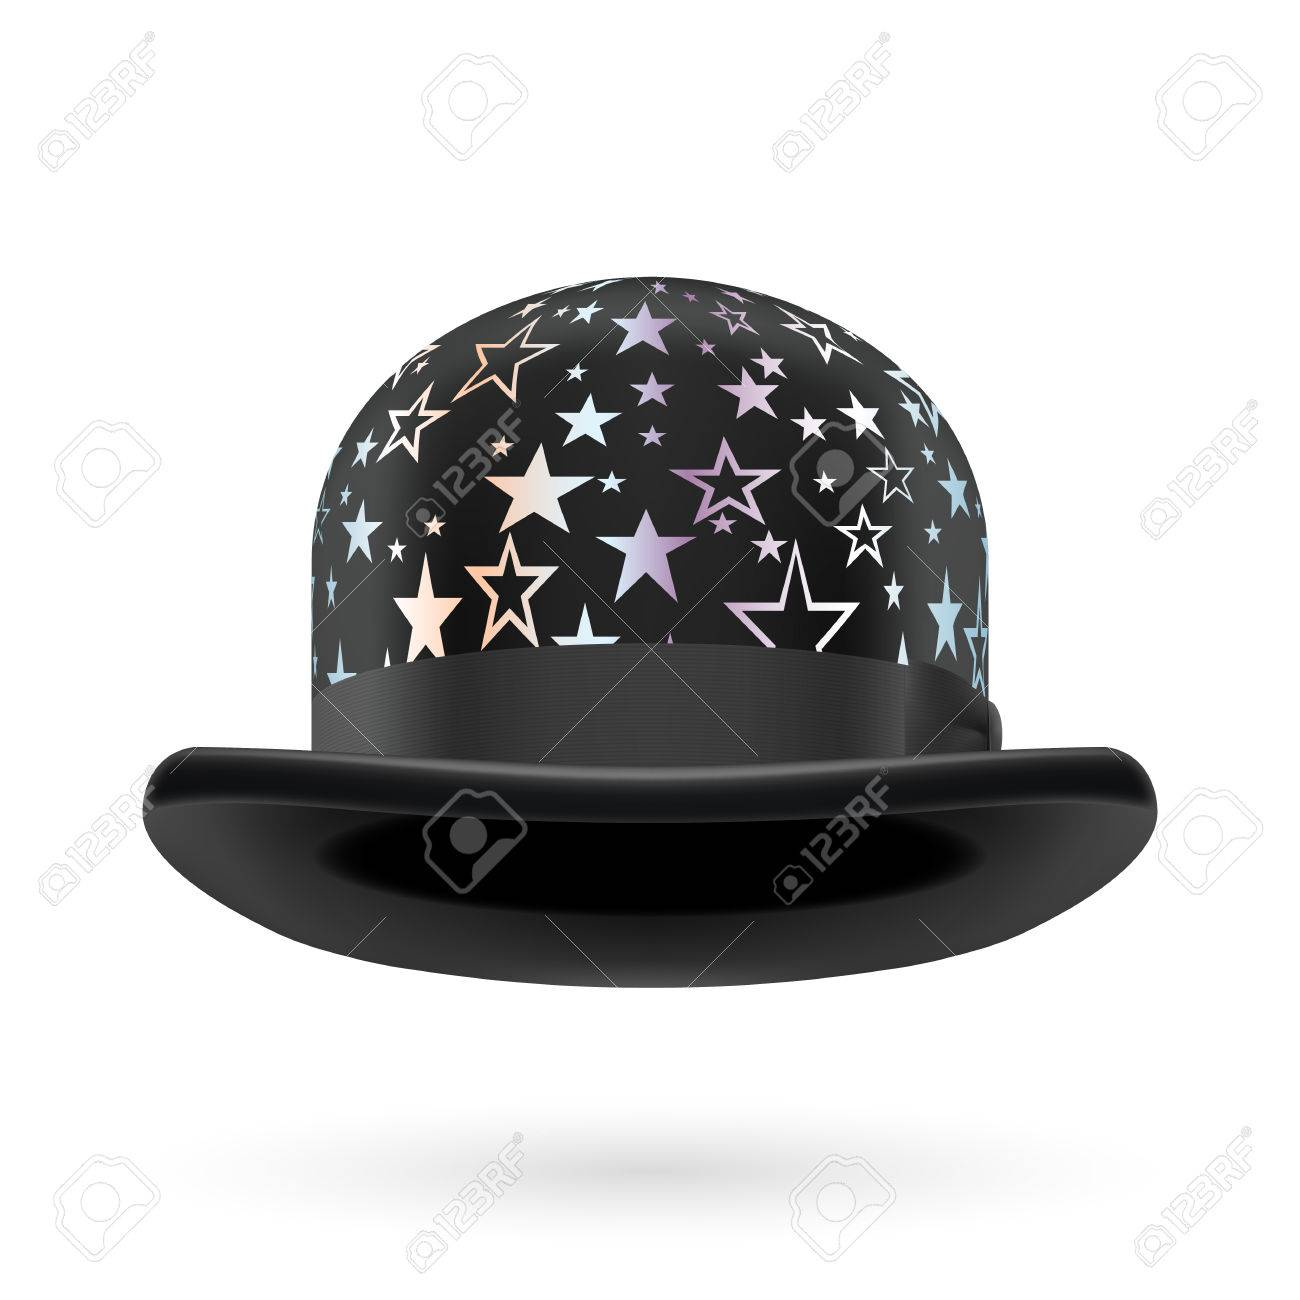 b94f04c24af4c Black round bowler hat with silver glistening stars. Stock Vector - 29032007